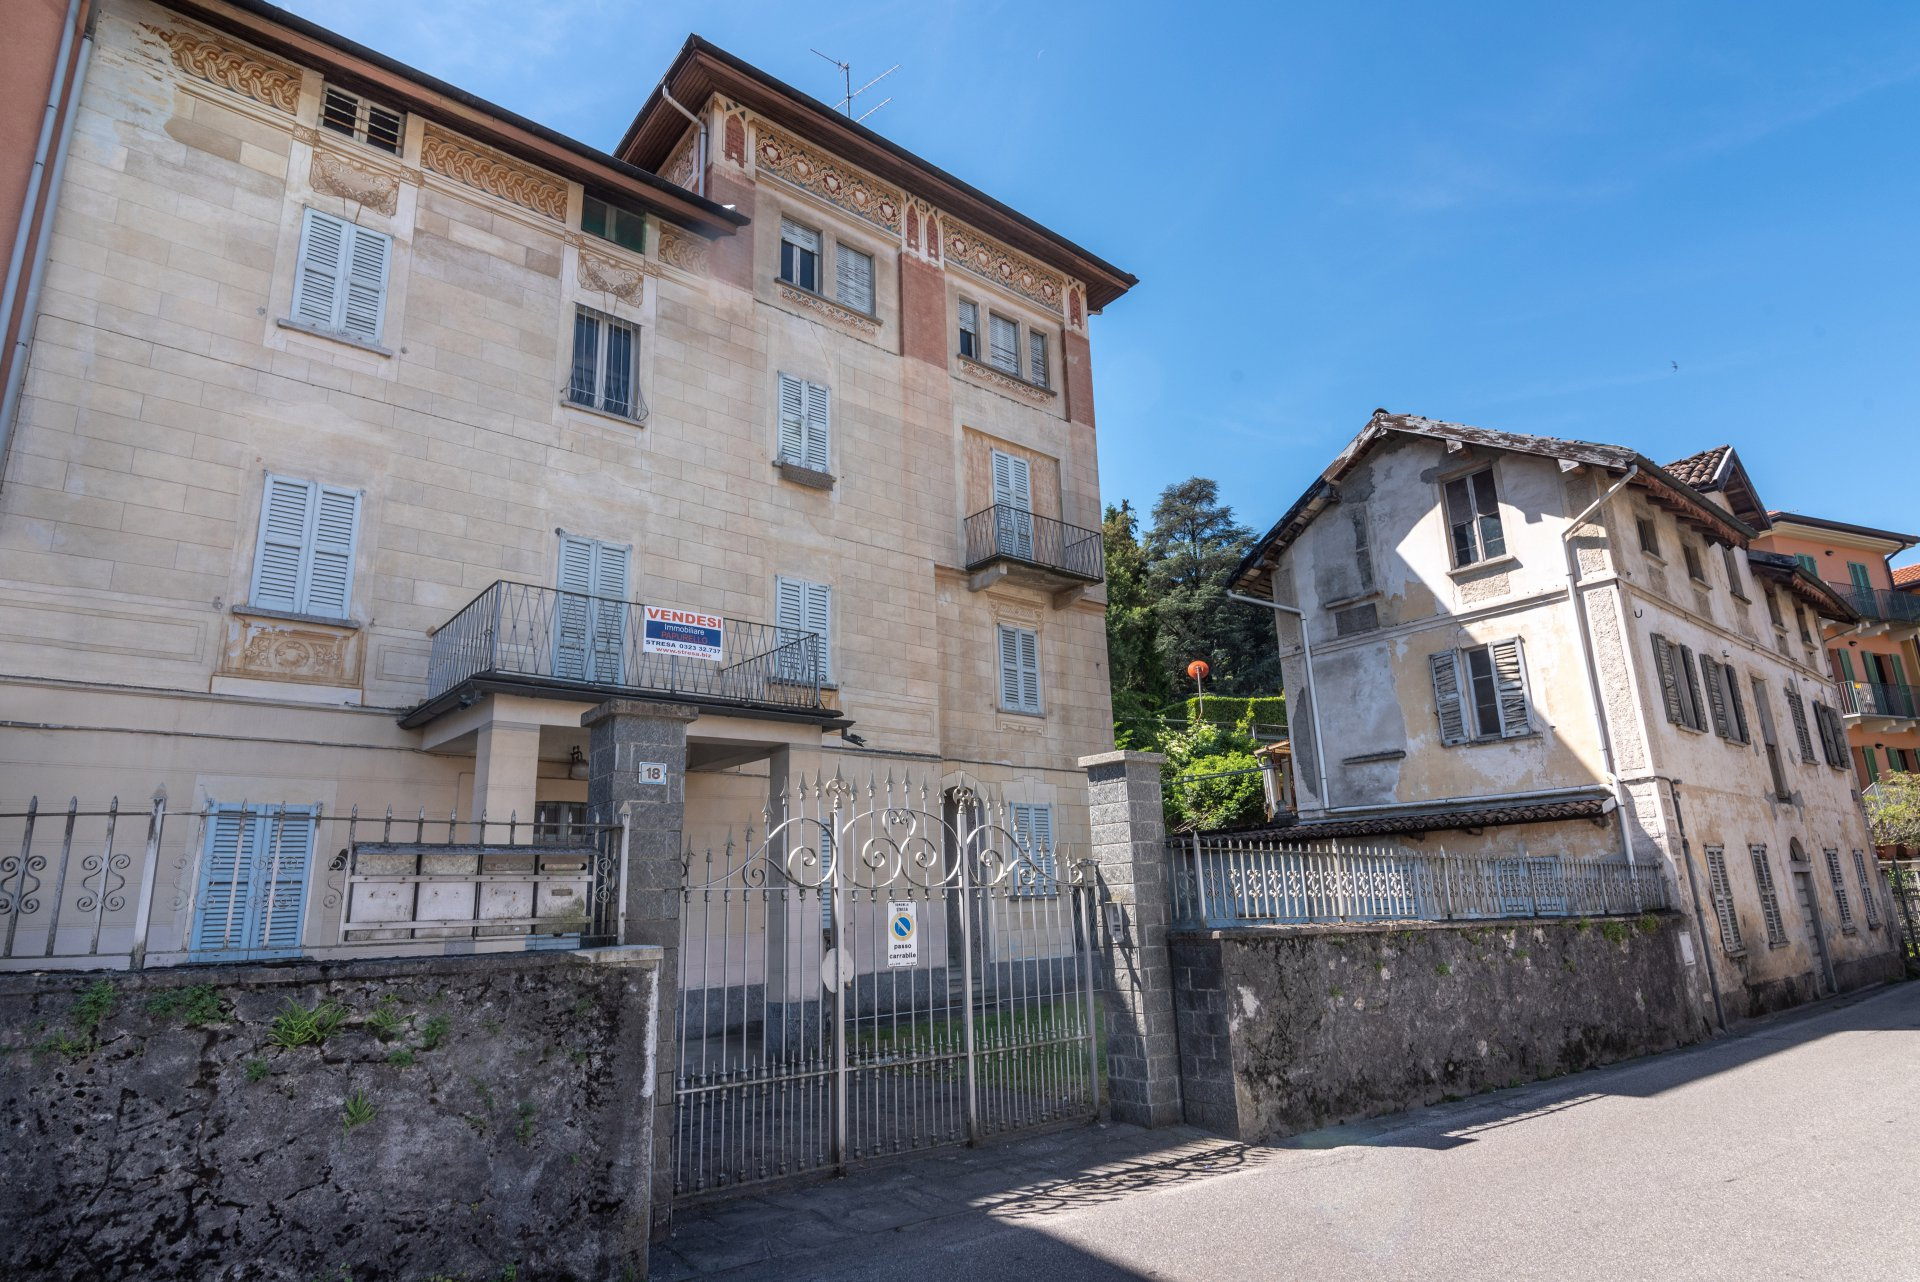 Property for sale in the centre of Stresa- entrance from the gate